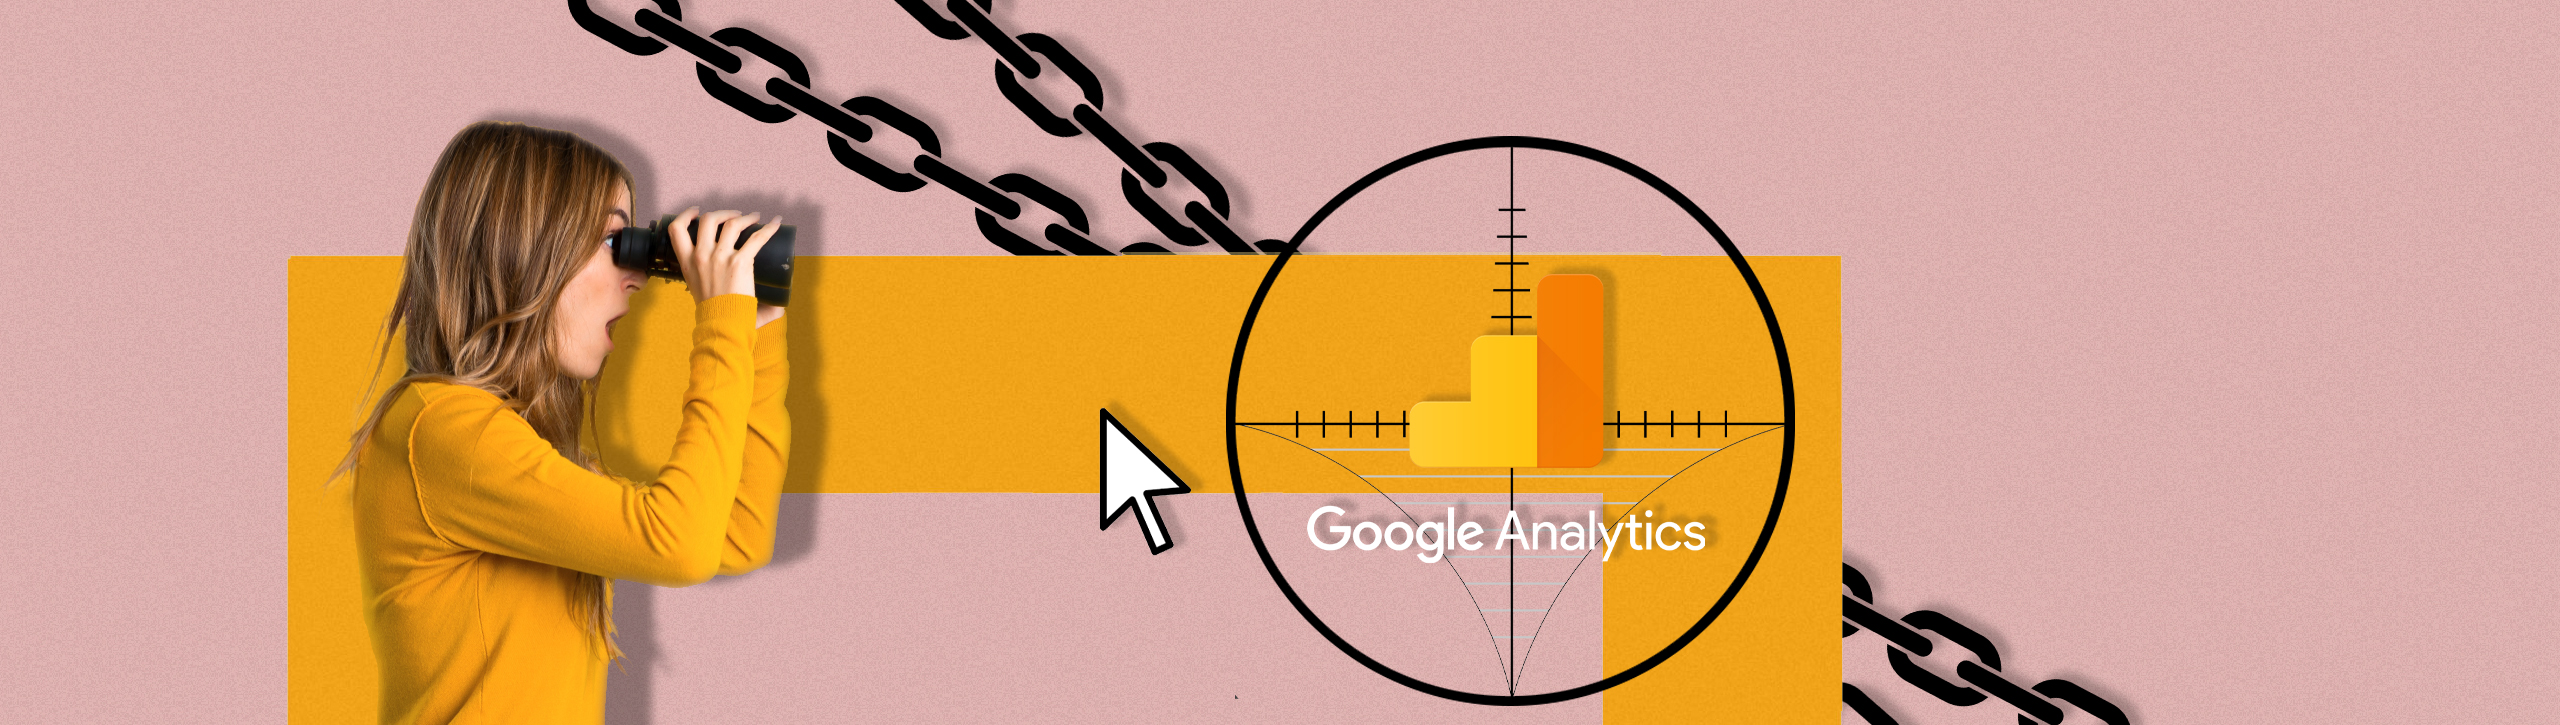 How to Track Link Clicks in Google Analytics